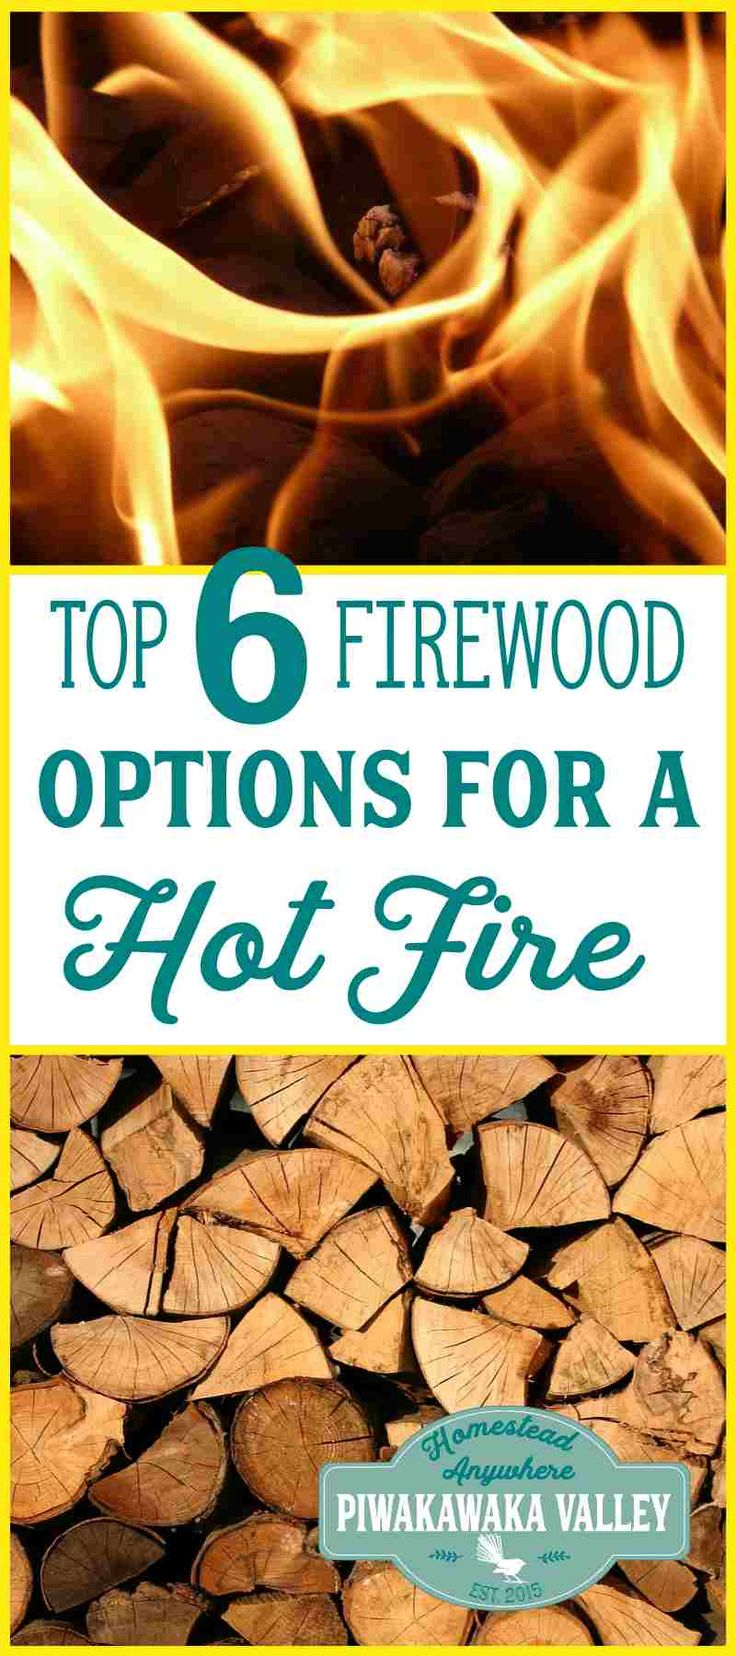 16 best stove images on pinterest wood stoves rocket stoves and